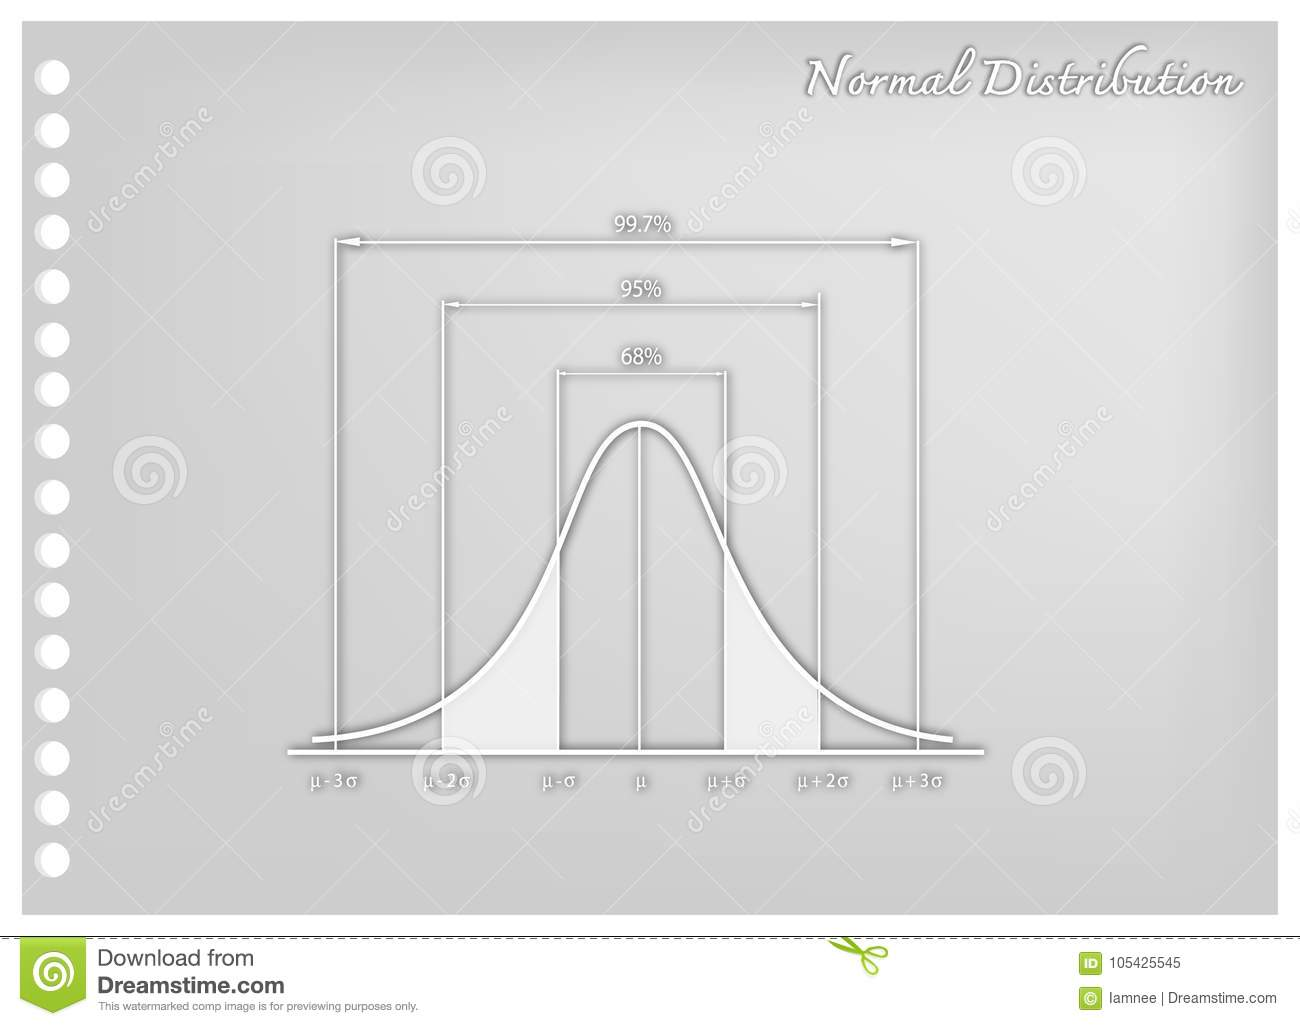 Paper Art Of Normal Distribution Chart Or Gaussian Bell